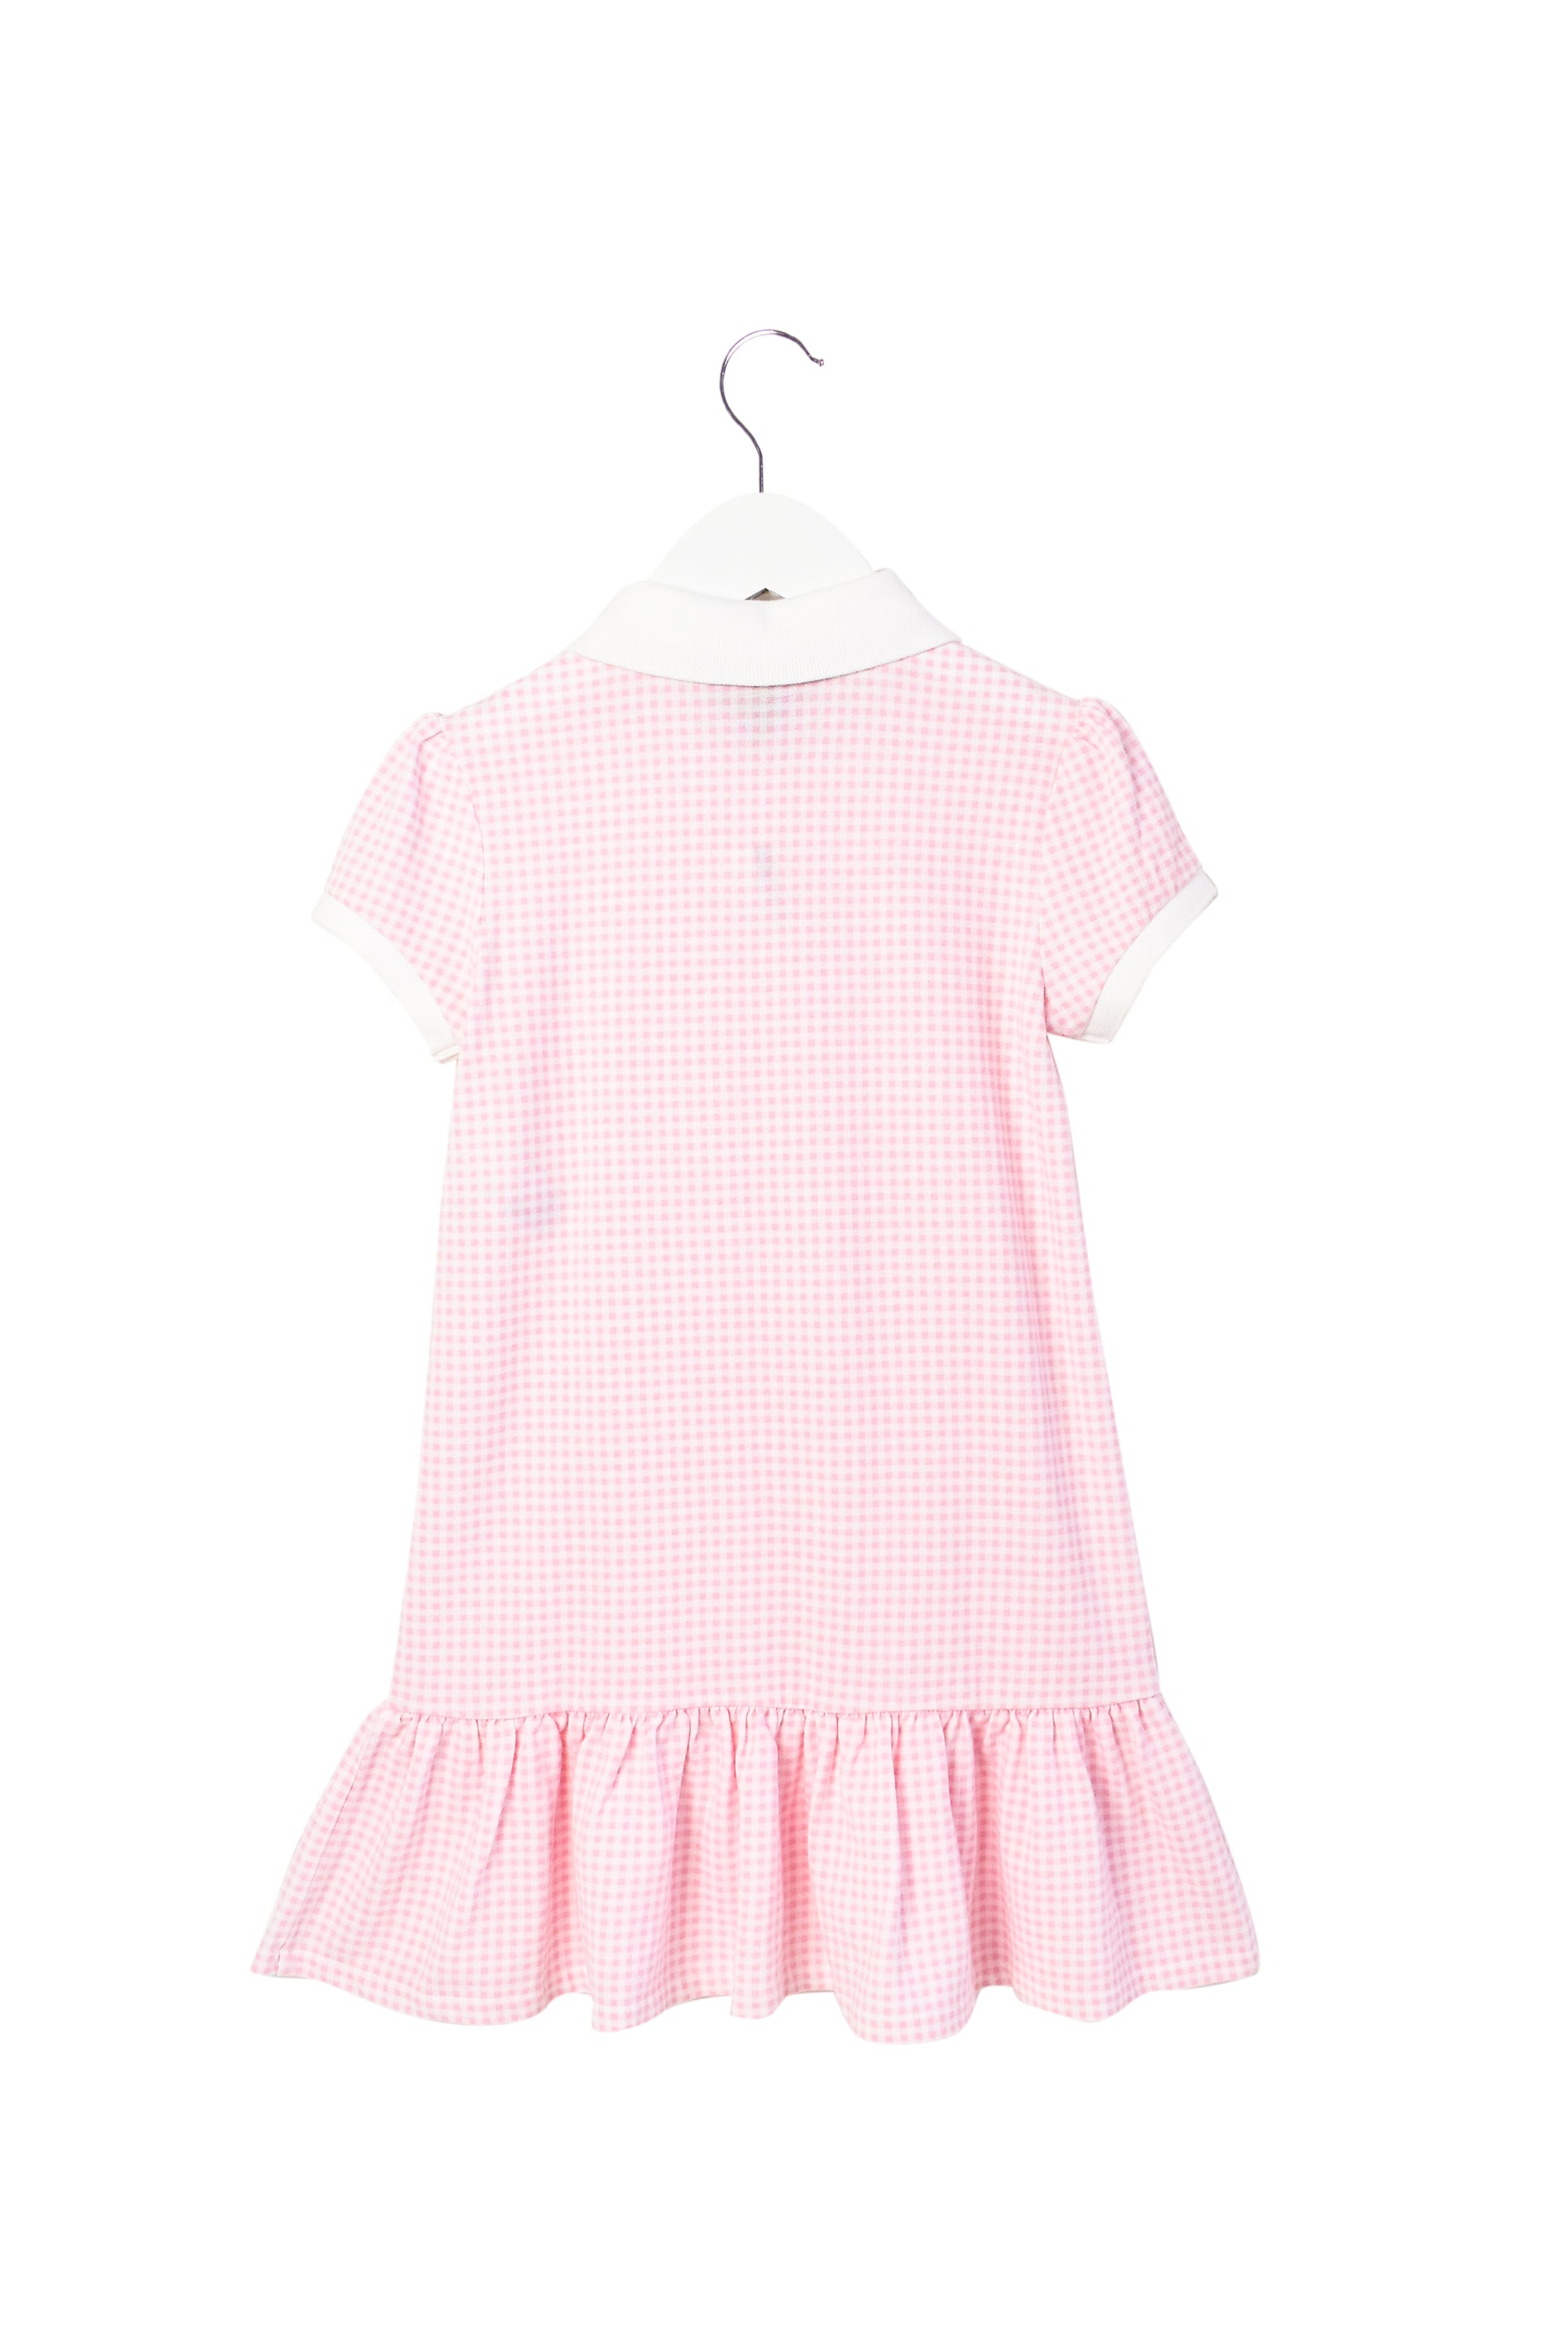 10006282 Polo Ralph Lauren Kids~Dress 5T at Retykle